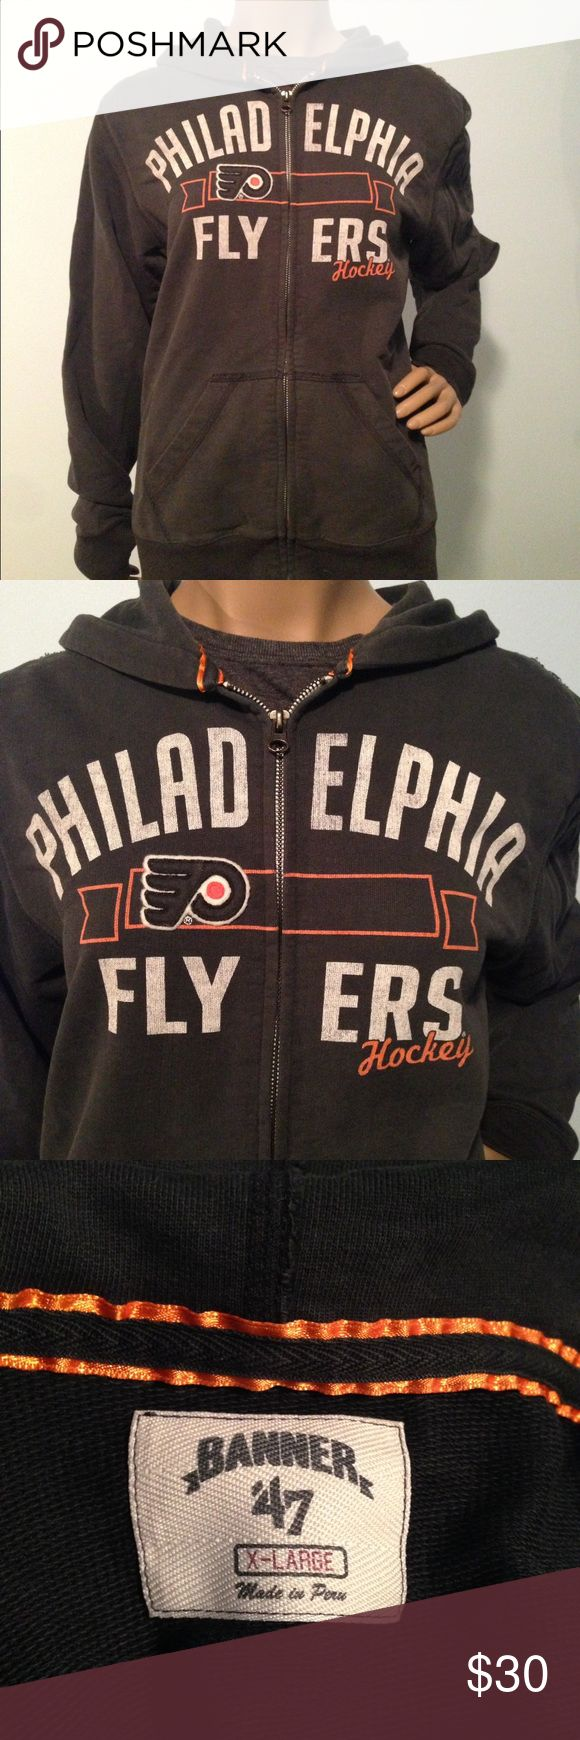 """Women's Flyers Hoodie 🏒🥅 EUC! Ladies Flyers apparel. Has the vintage worn/faded look. Runs a little small IMO but super comfortable. Listed as an XL, but I'd say it fits like a L. I also have a EUC grey Flyers women's tshirt in my closet. Bundle and save!   Approx Measurements: Bust: 21"""" Length: 26""""  Material: 100% Cotton Tops Sweatshirts & Hoodies"""